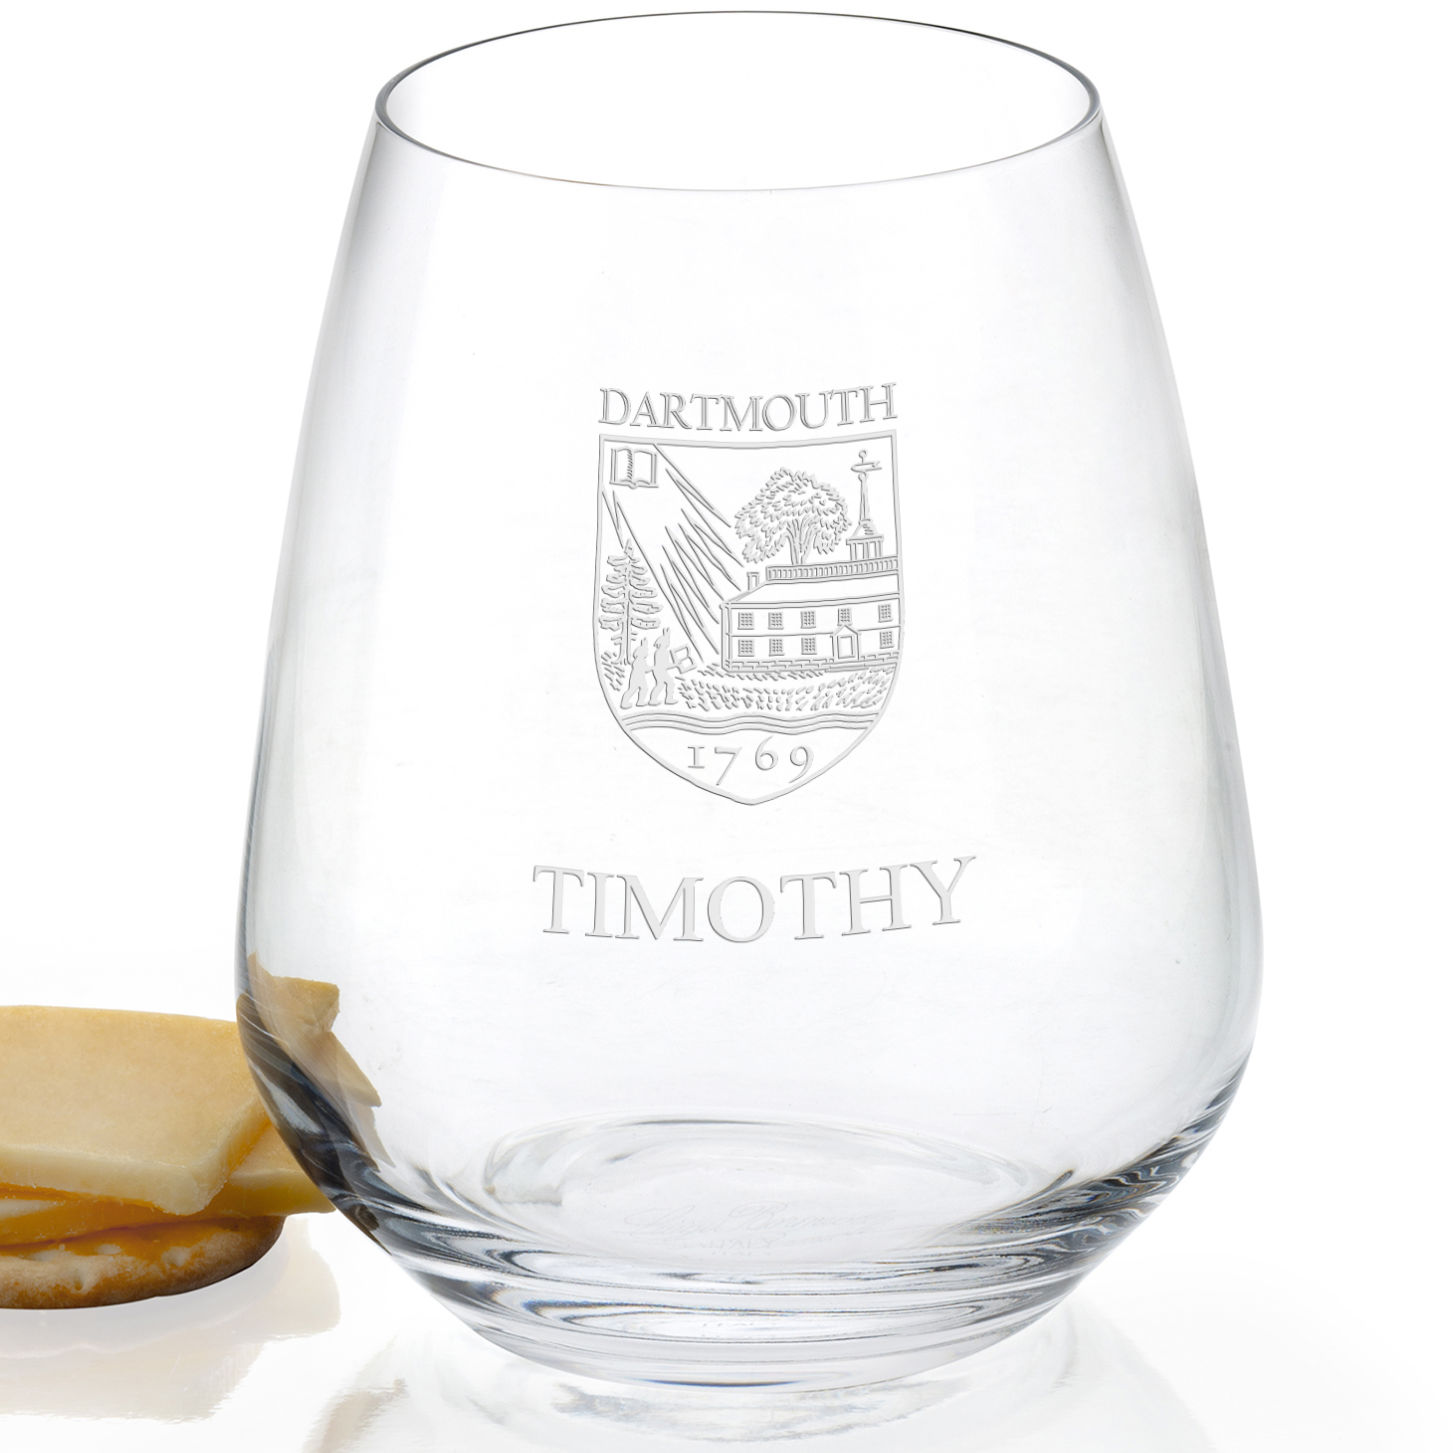 Dartmouth College Stemless Wine Glasses - Set of 4 - Image 2